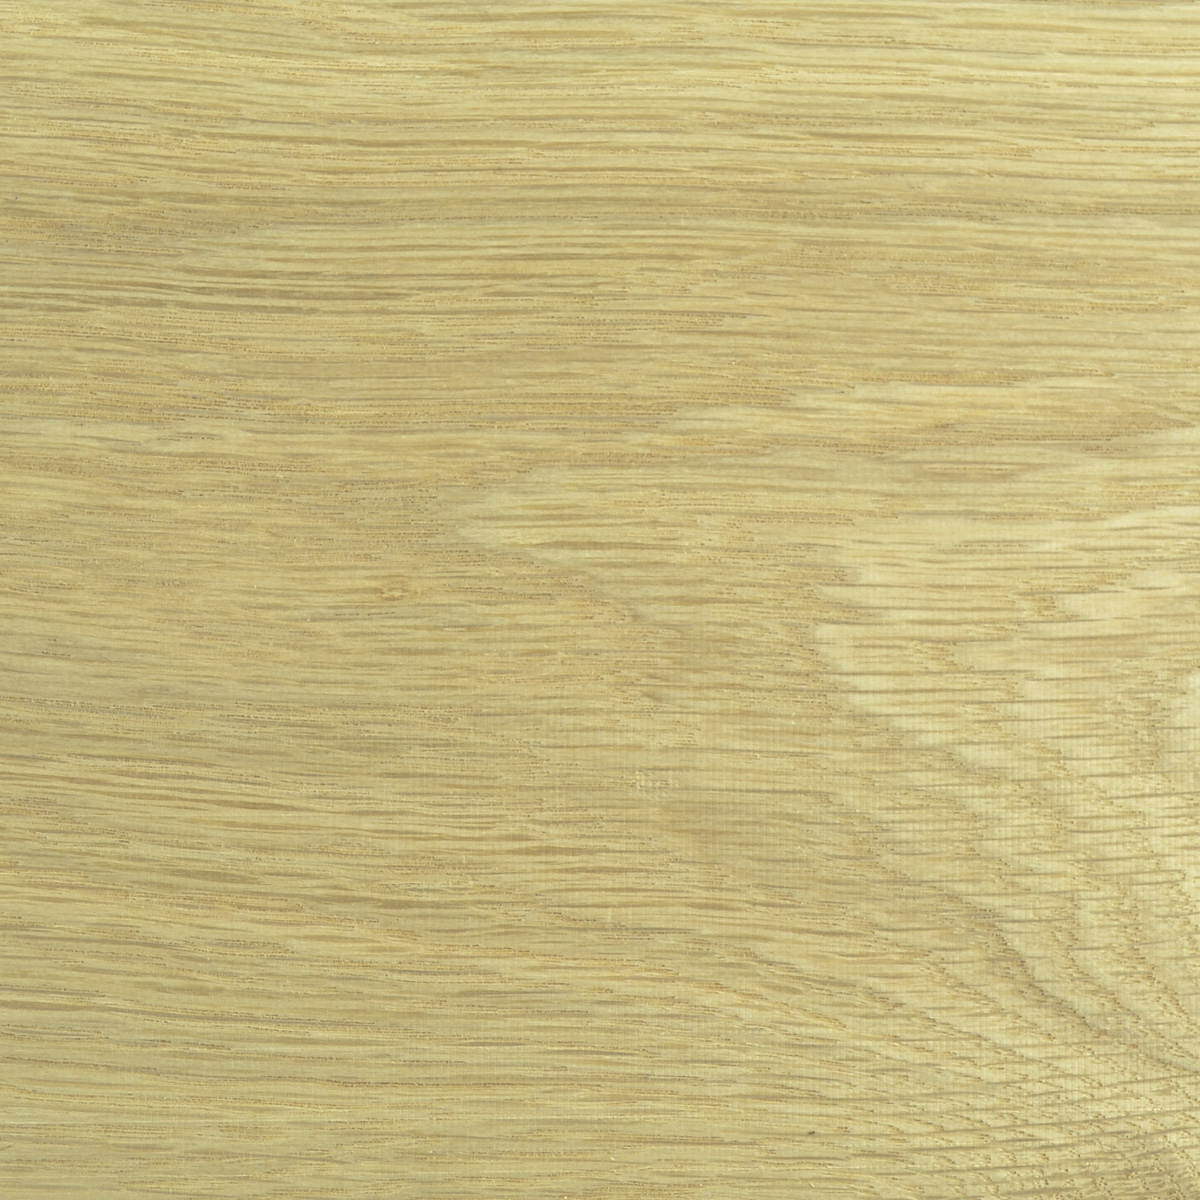 White Oak Wood (close up of wood grain)